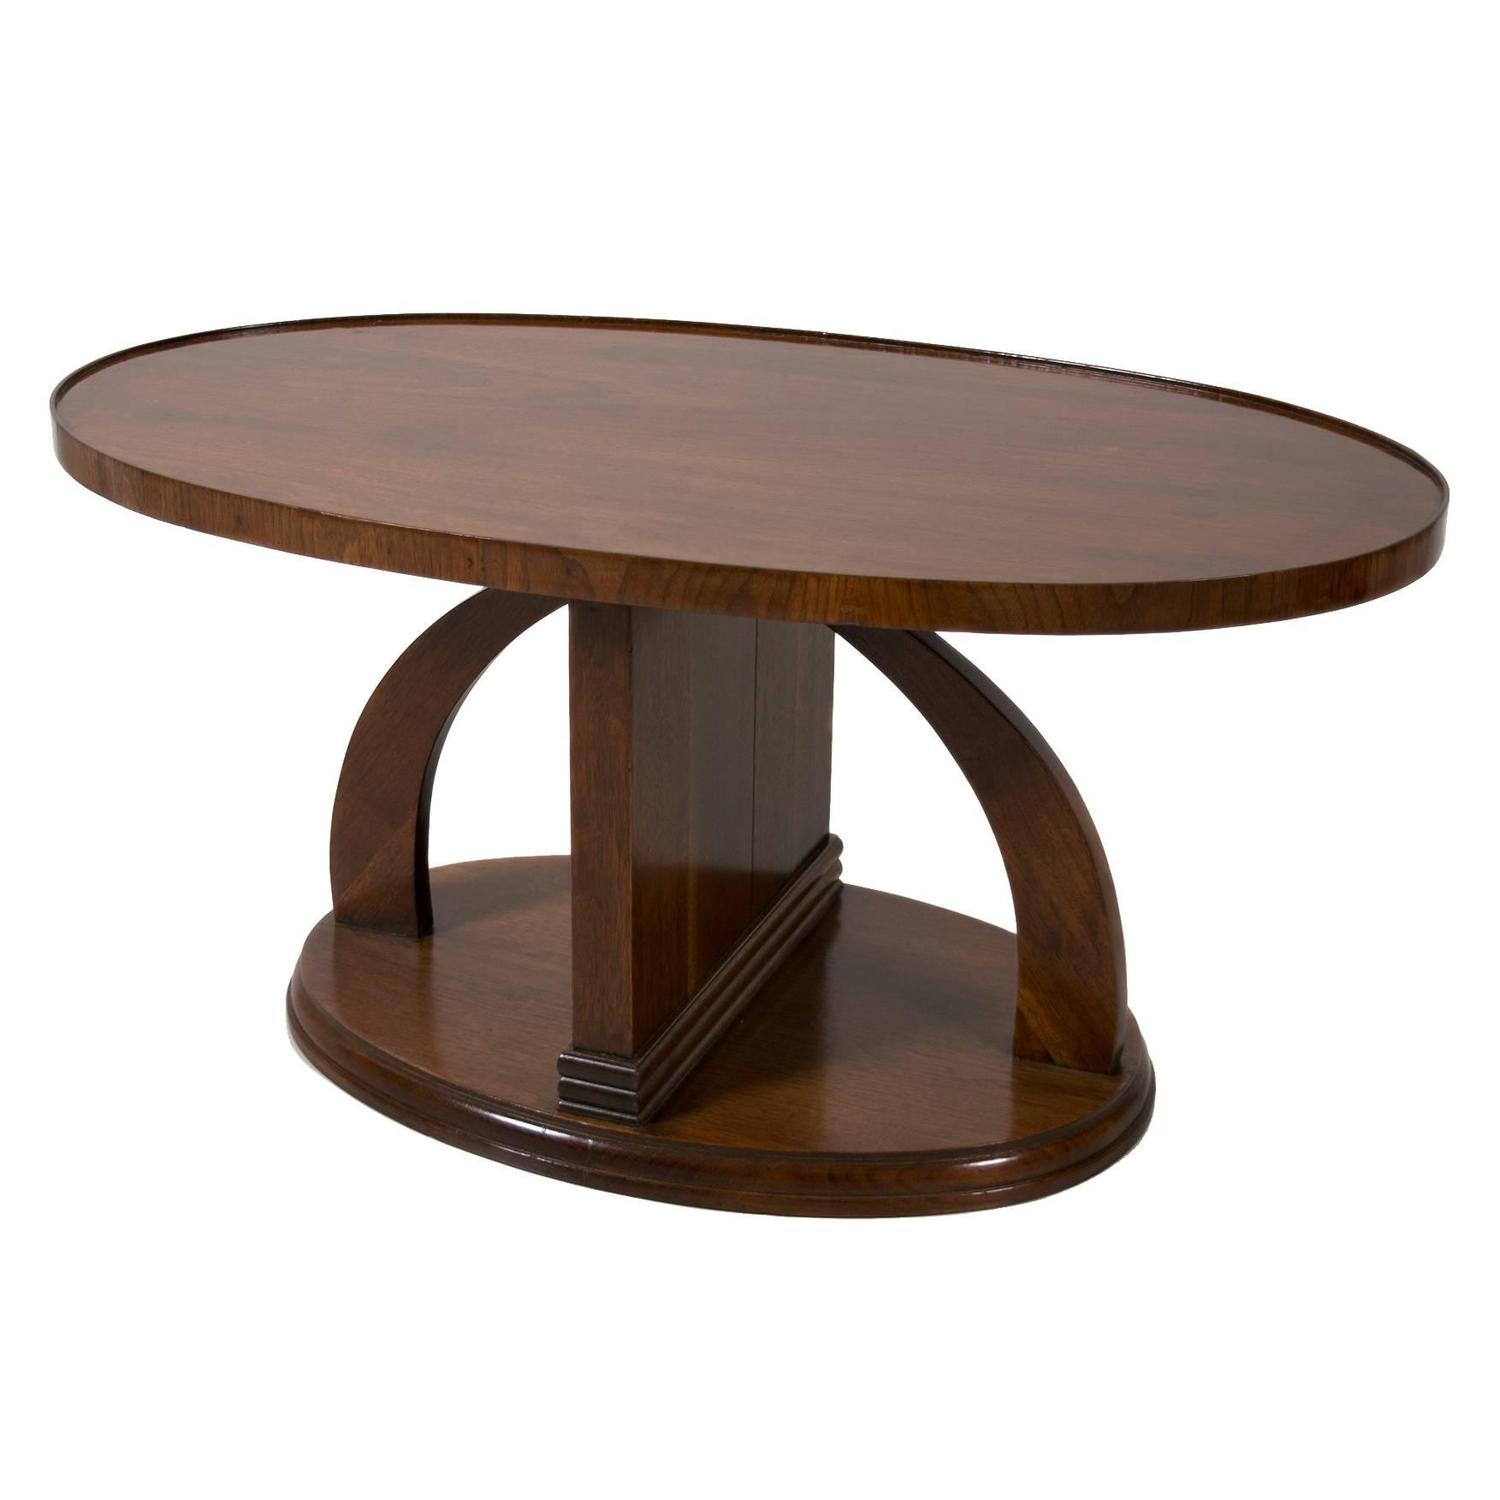 Swedish Art Deco Period Mahogany Coffee Table Or Occasional Table Circa 1930 For Sale At 1stdibs